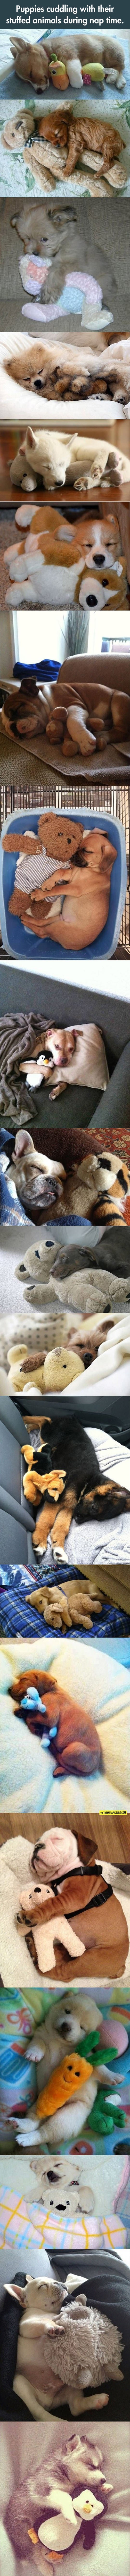 Cute puppies cuddling their stuffed animal friends